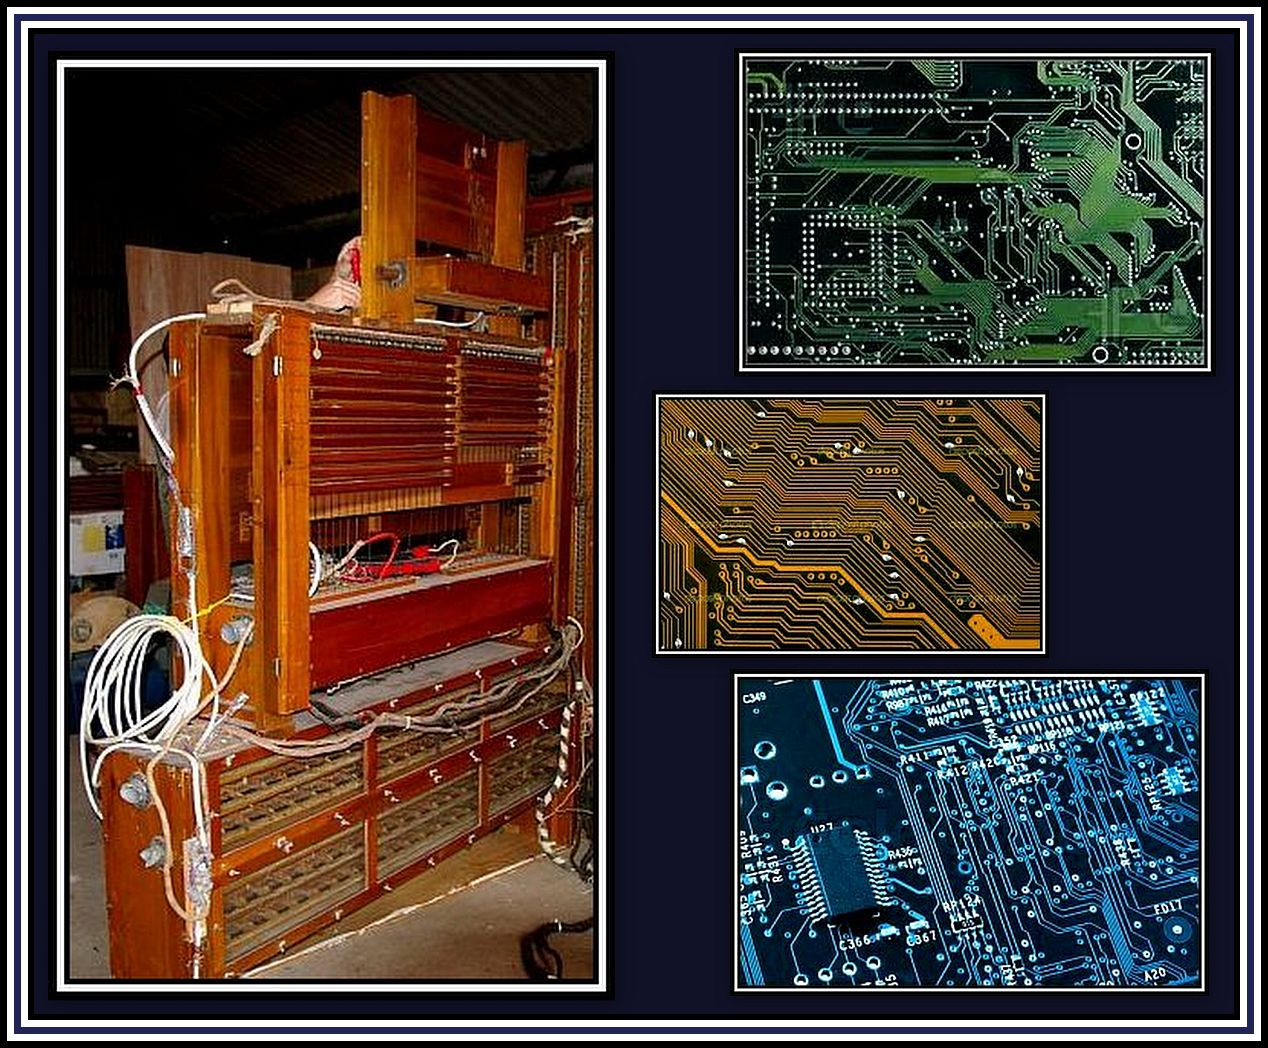 Relay & Computer Boards Collage